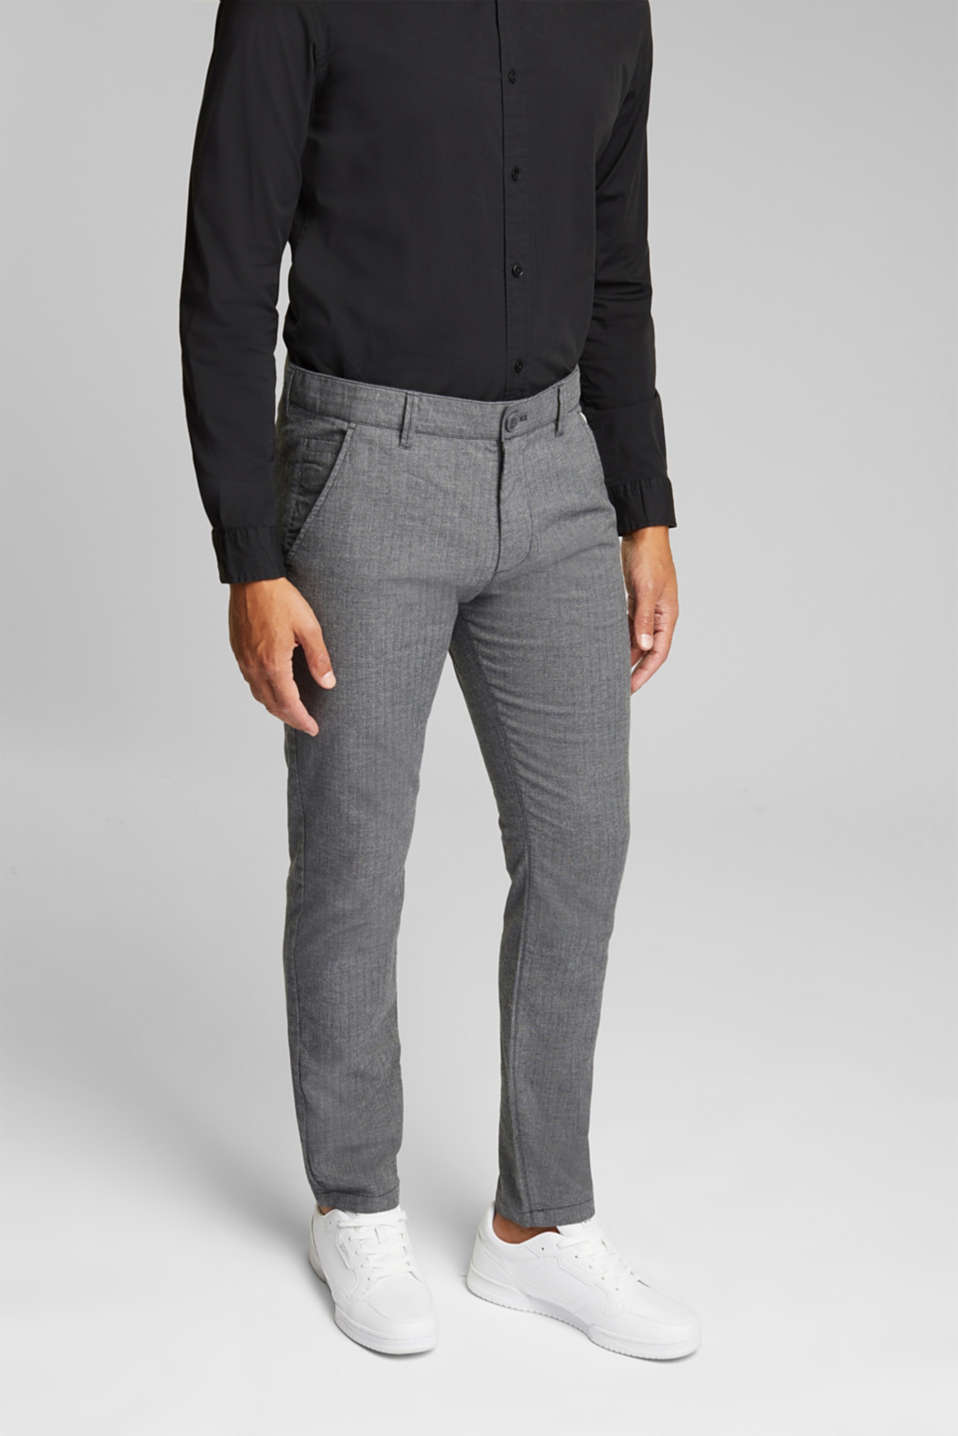 Esprit - fashion pants